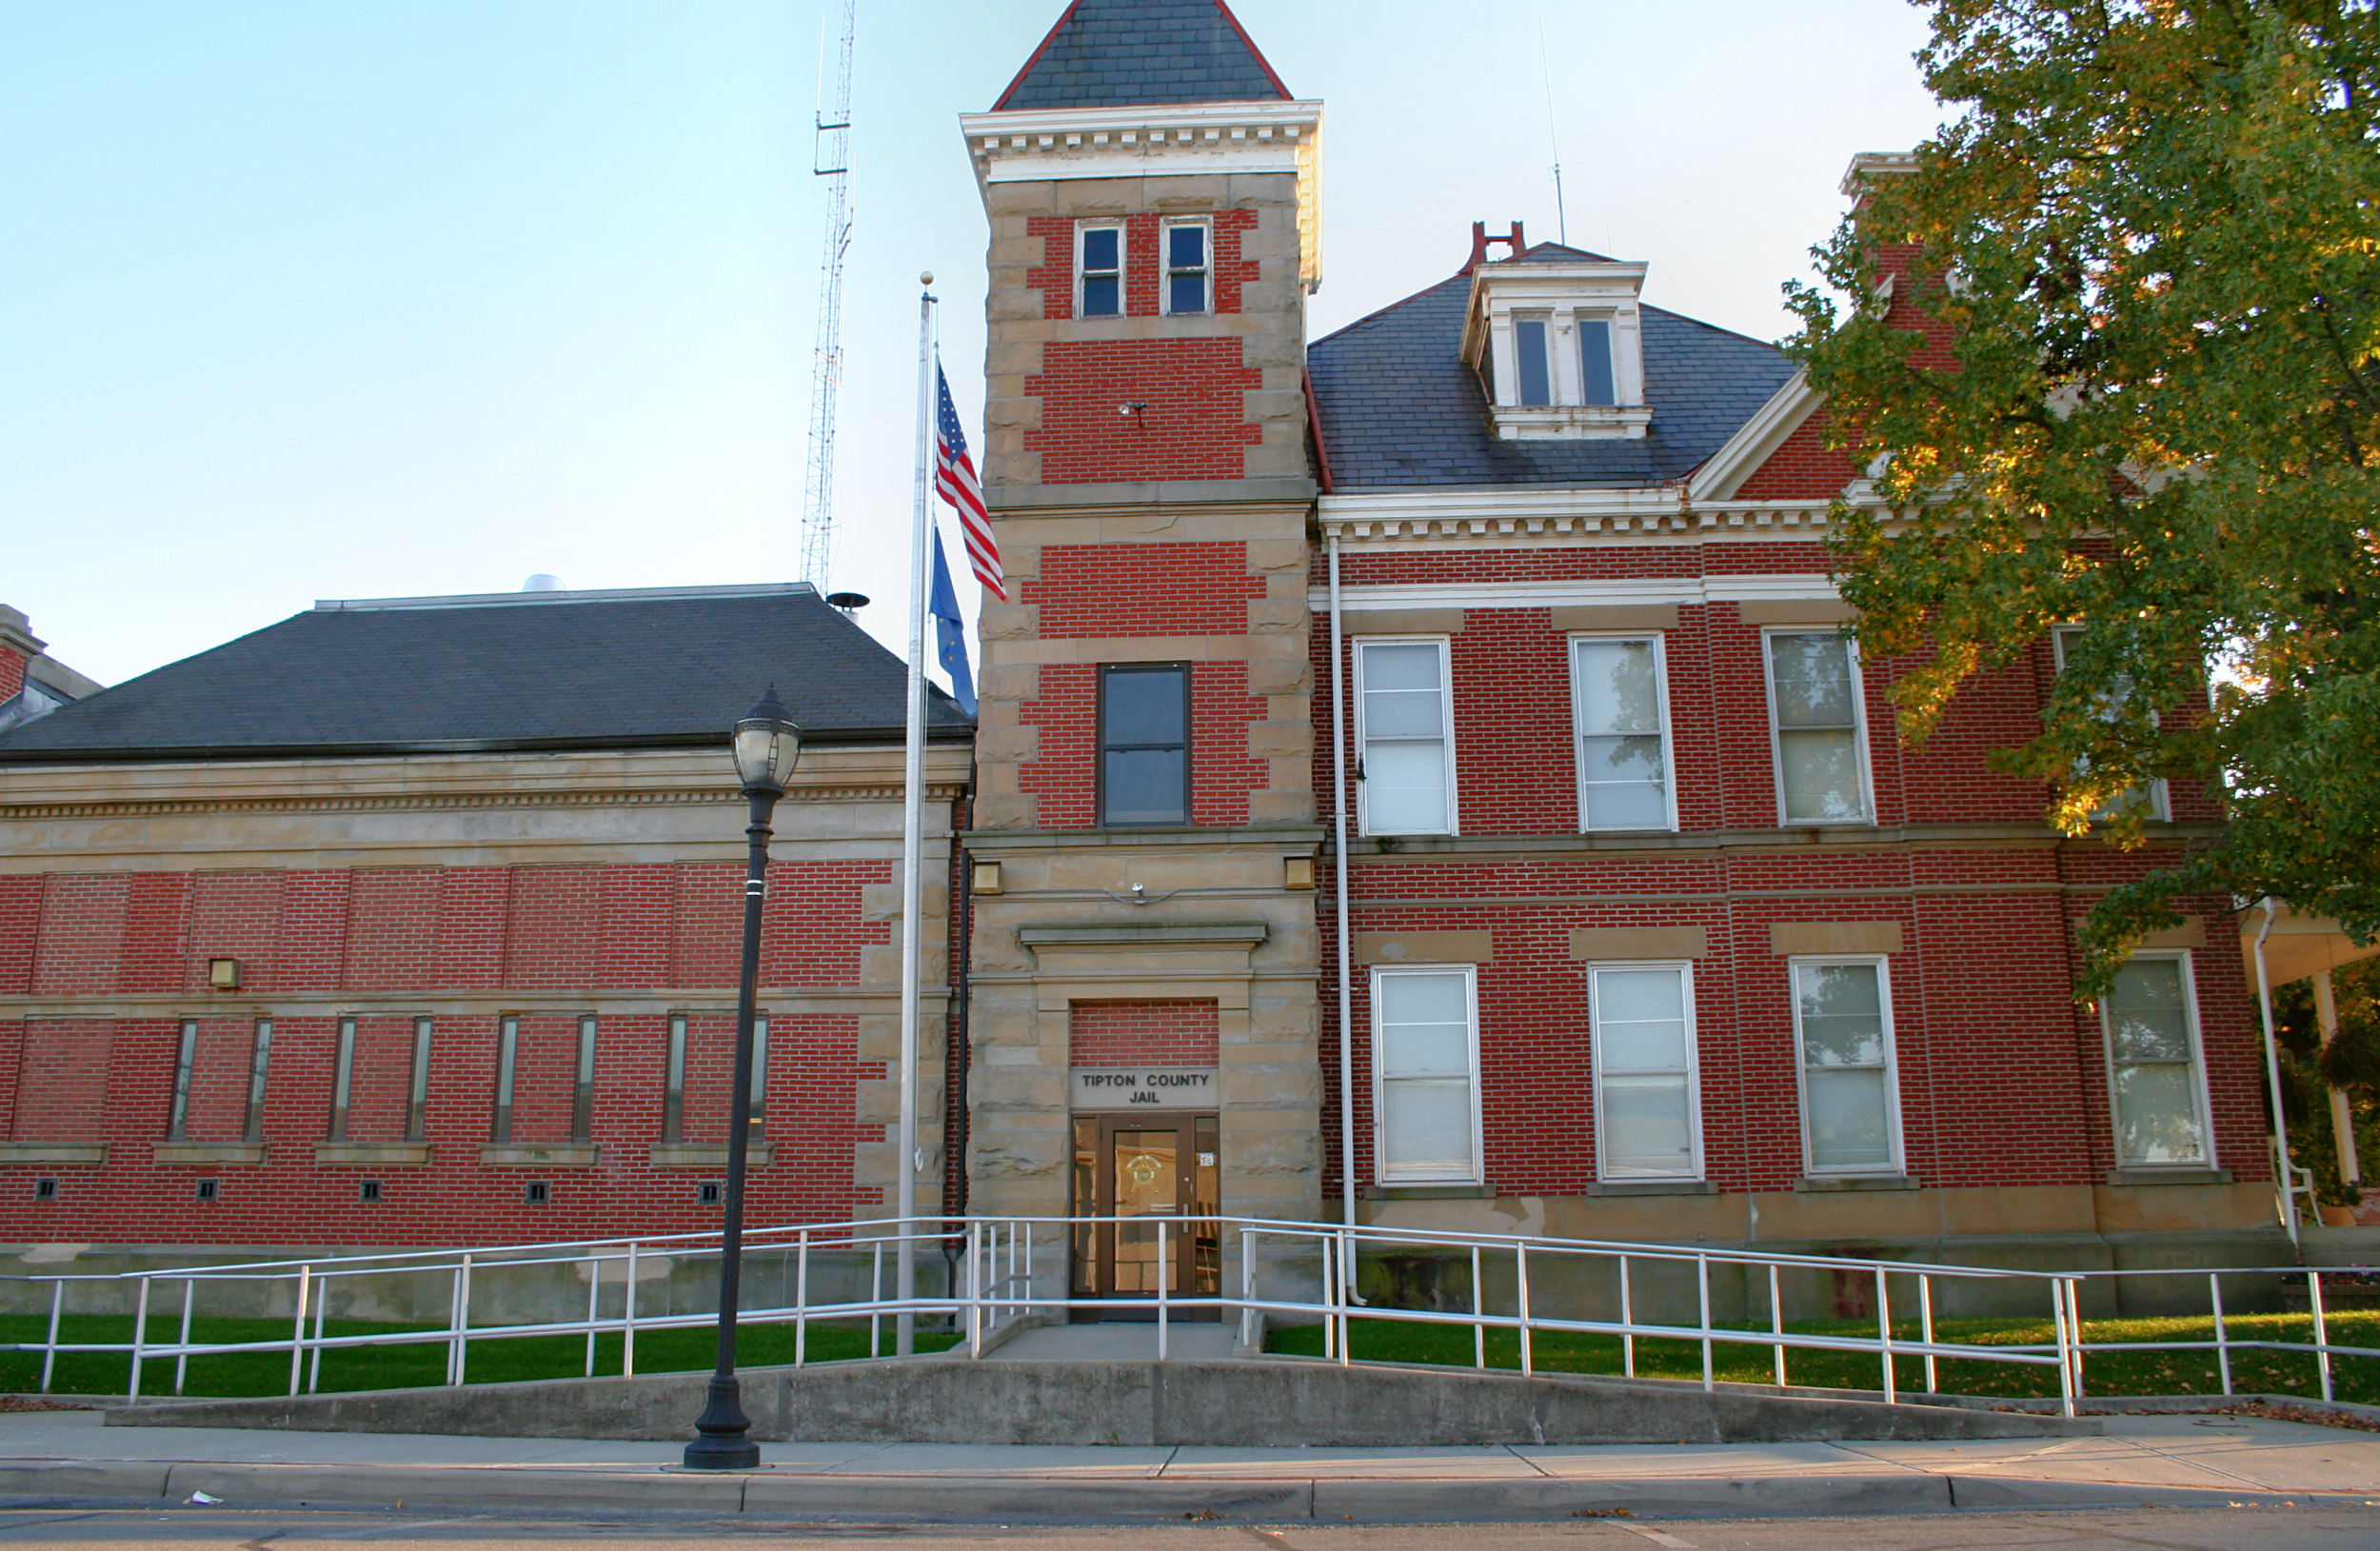 Tipton County Jail and Sheriff's Home - Wikipedia